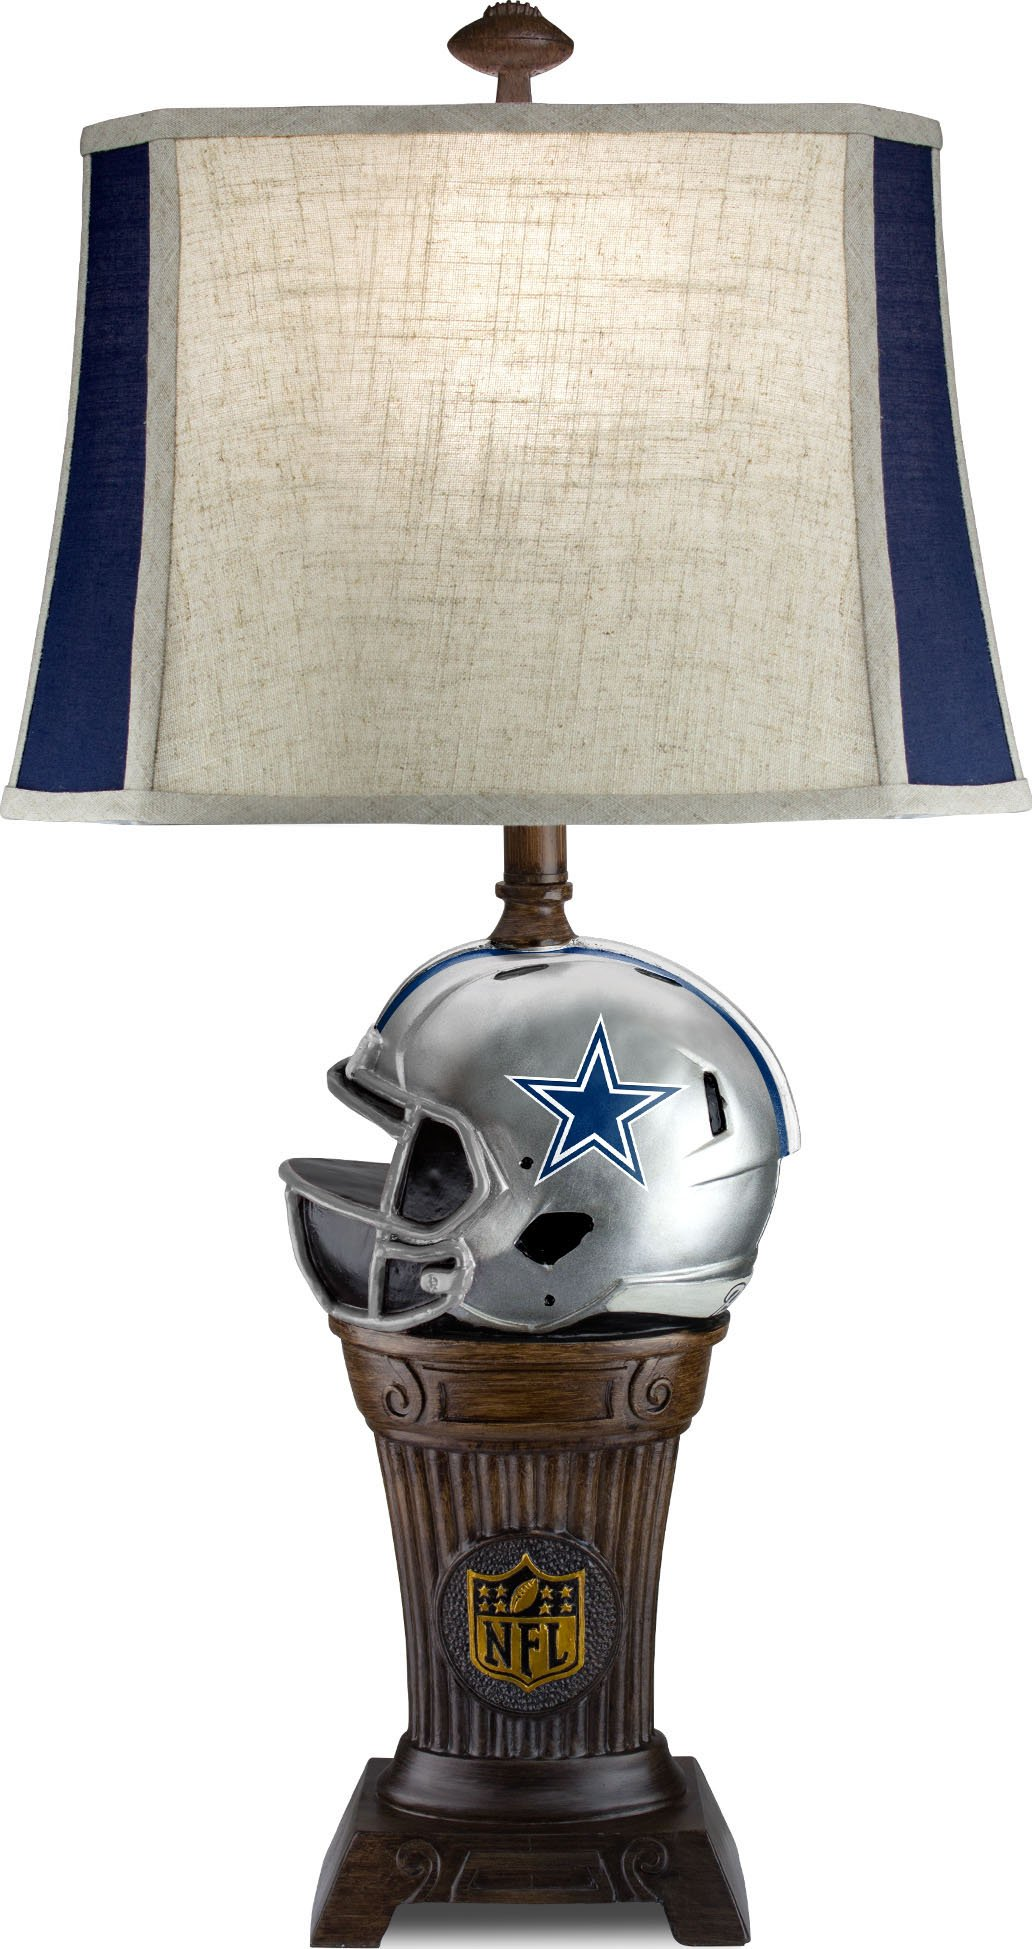 Imperial Officially Licensed NFL Merchandise: Trophy Lamp, Dallas Cowboys